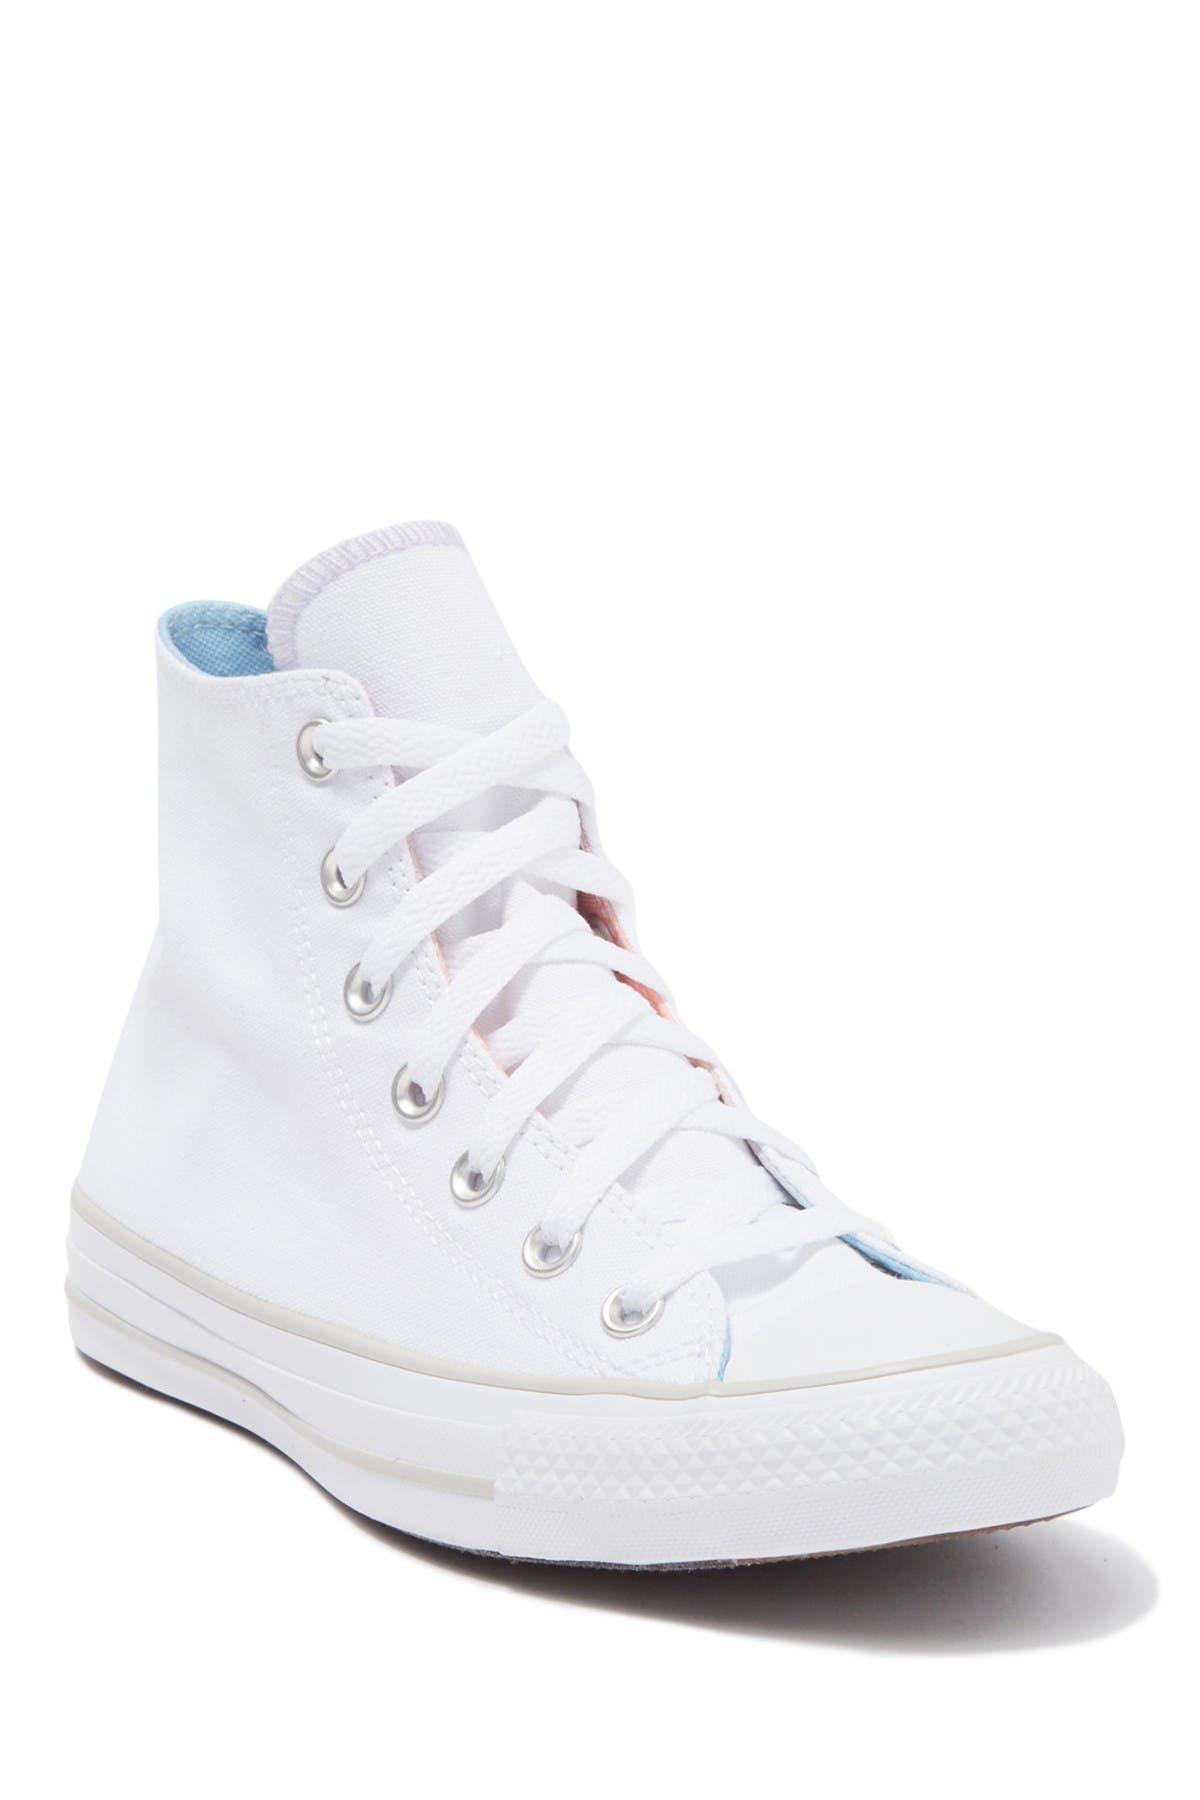 Image of Converse Chuck Taylor All Stars High Top Sneaker